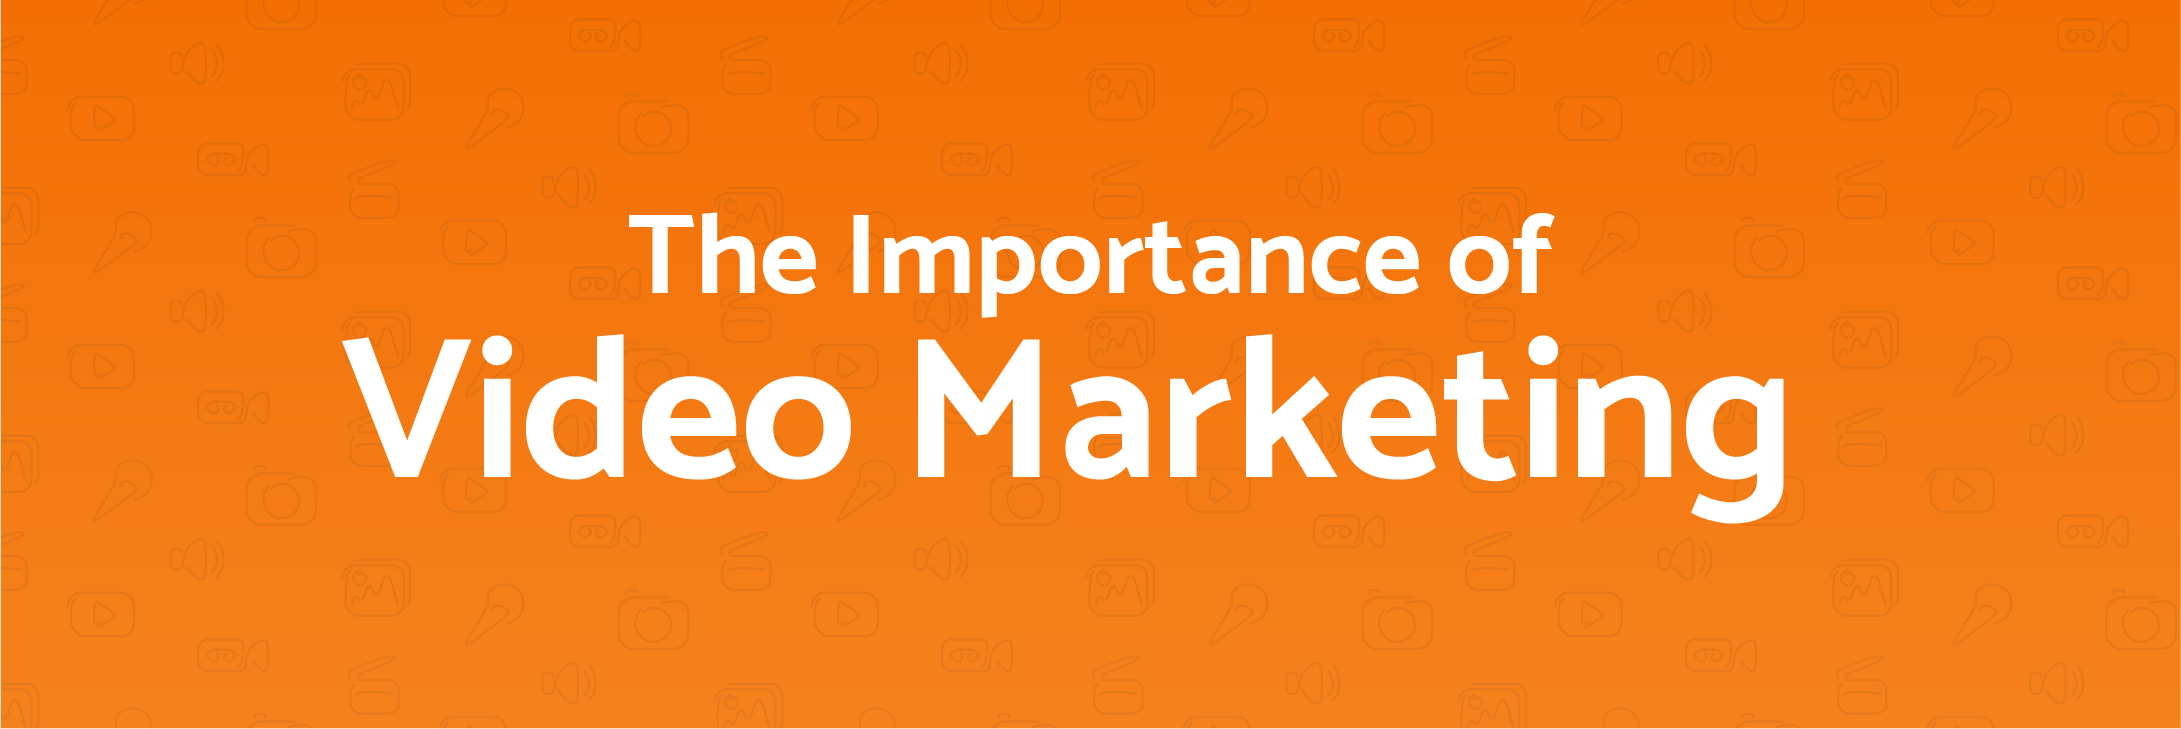 Video Content is King: The Importance of Video Marketing [Infographic]